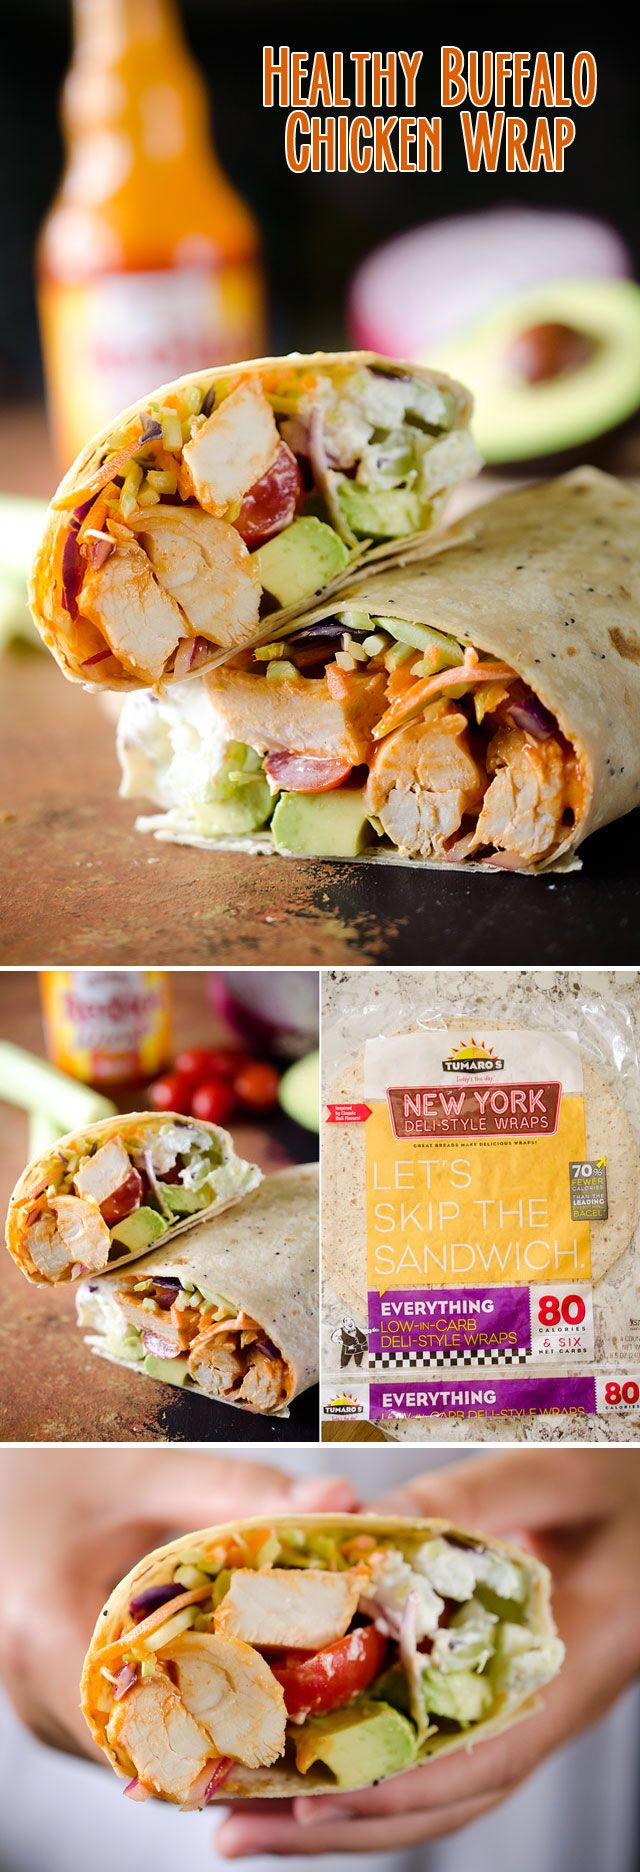 Healthy Buffalo Chicken Wrap - A light and healthy wrap filled with buffalo chicken breasts, Greek yogurt, bleu cheese crumbles, broccoli slaw, celery, avocado and tomatoes for an easy lunch with bold flavor! #Buffalo #Chicken #Wrap #Lunch #Healthy #Light